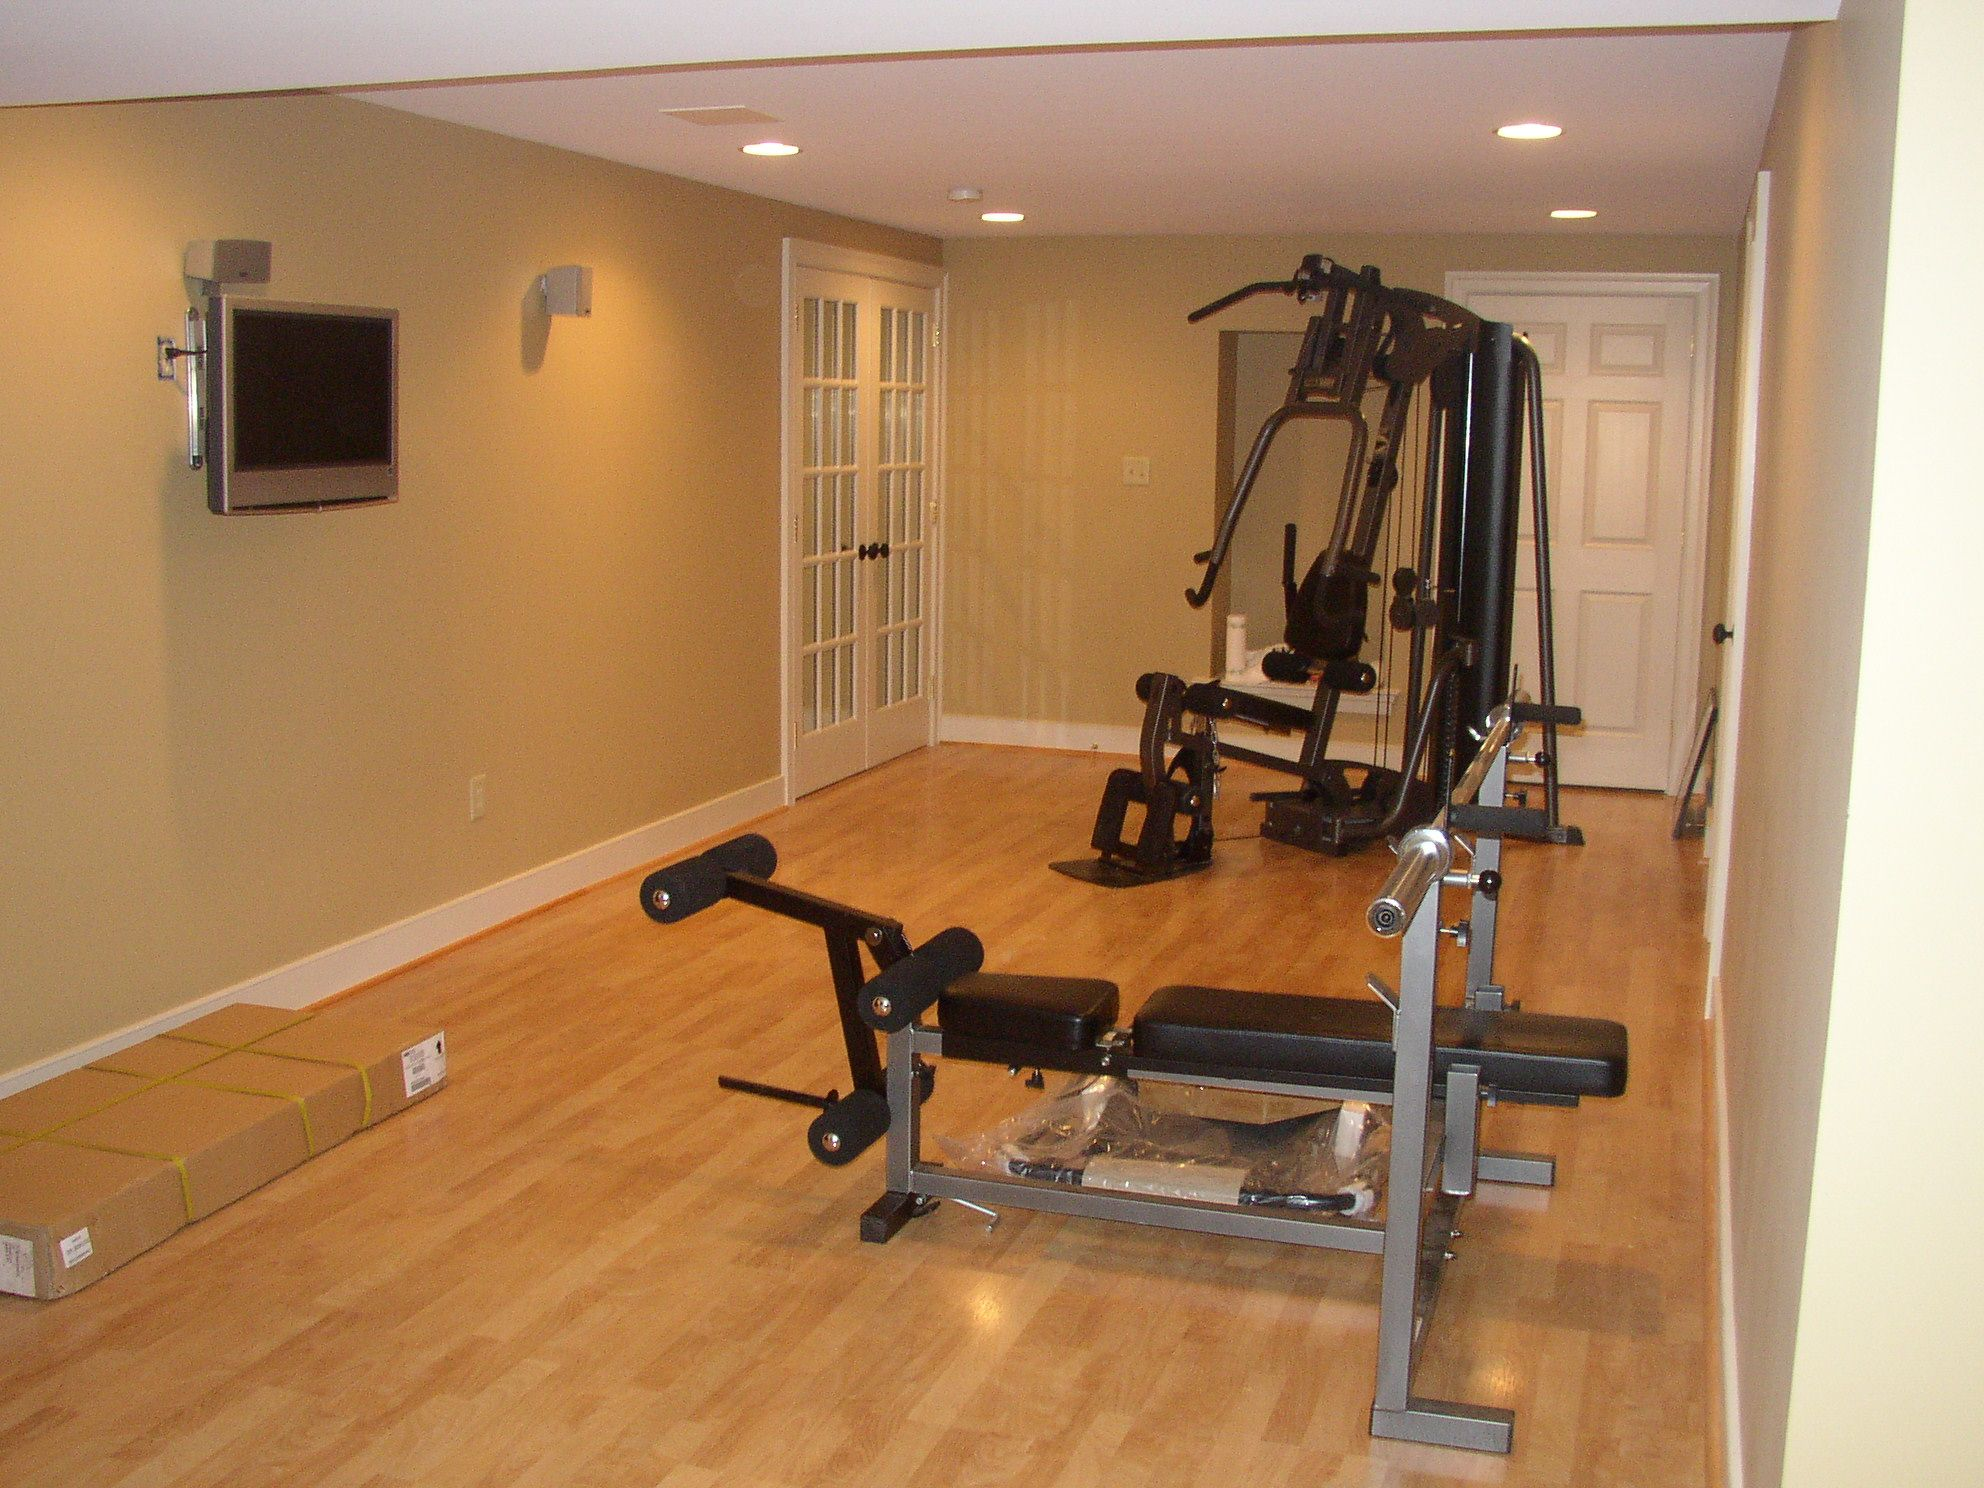 Exercise Rooms In Basements. Basement Level Is Finished With Rec Room Bedroom Storage Laundry Room And A